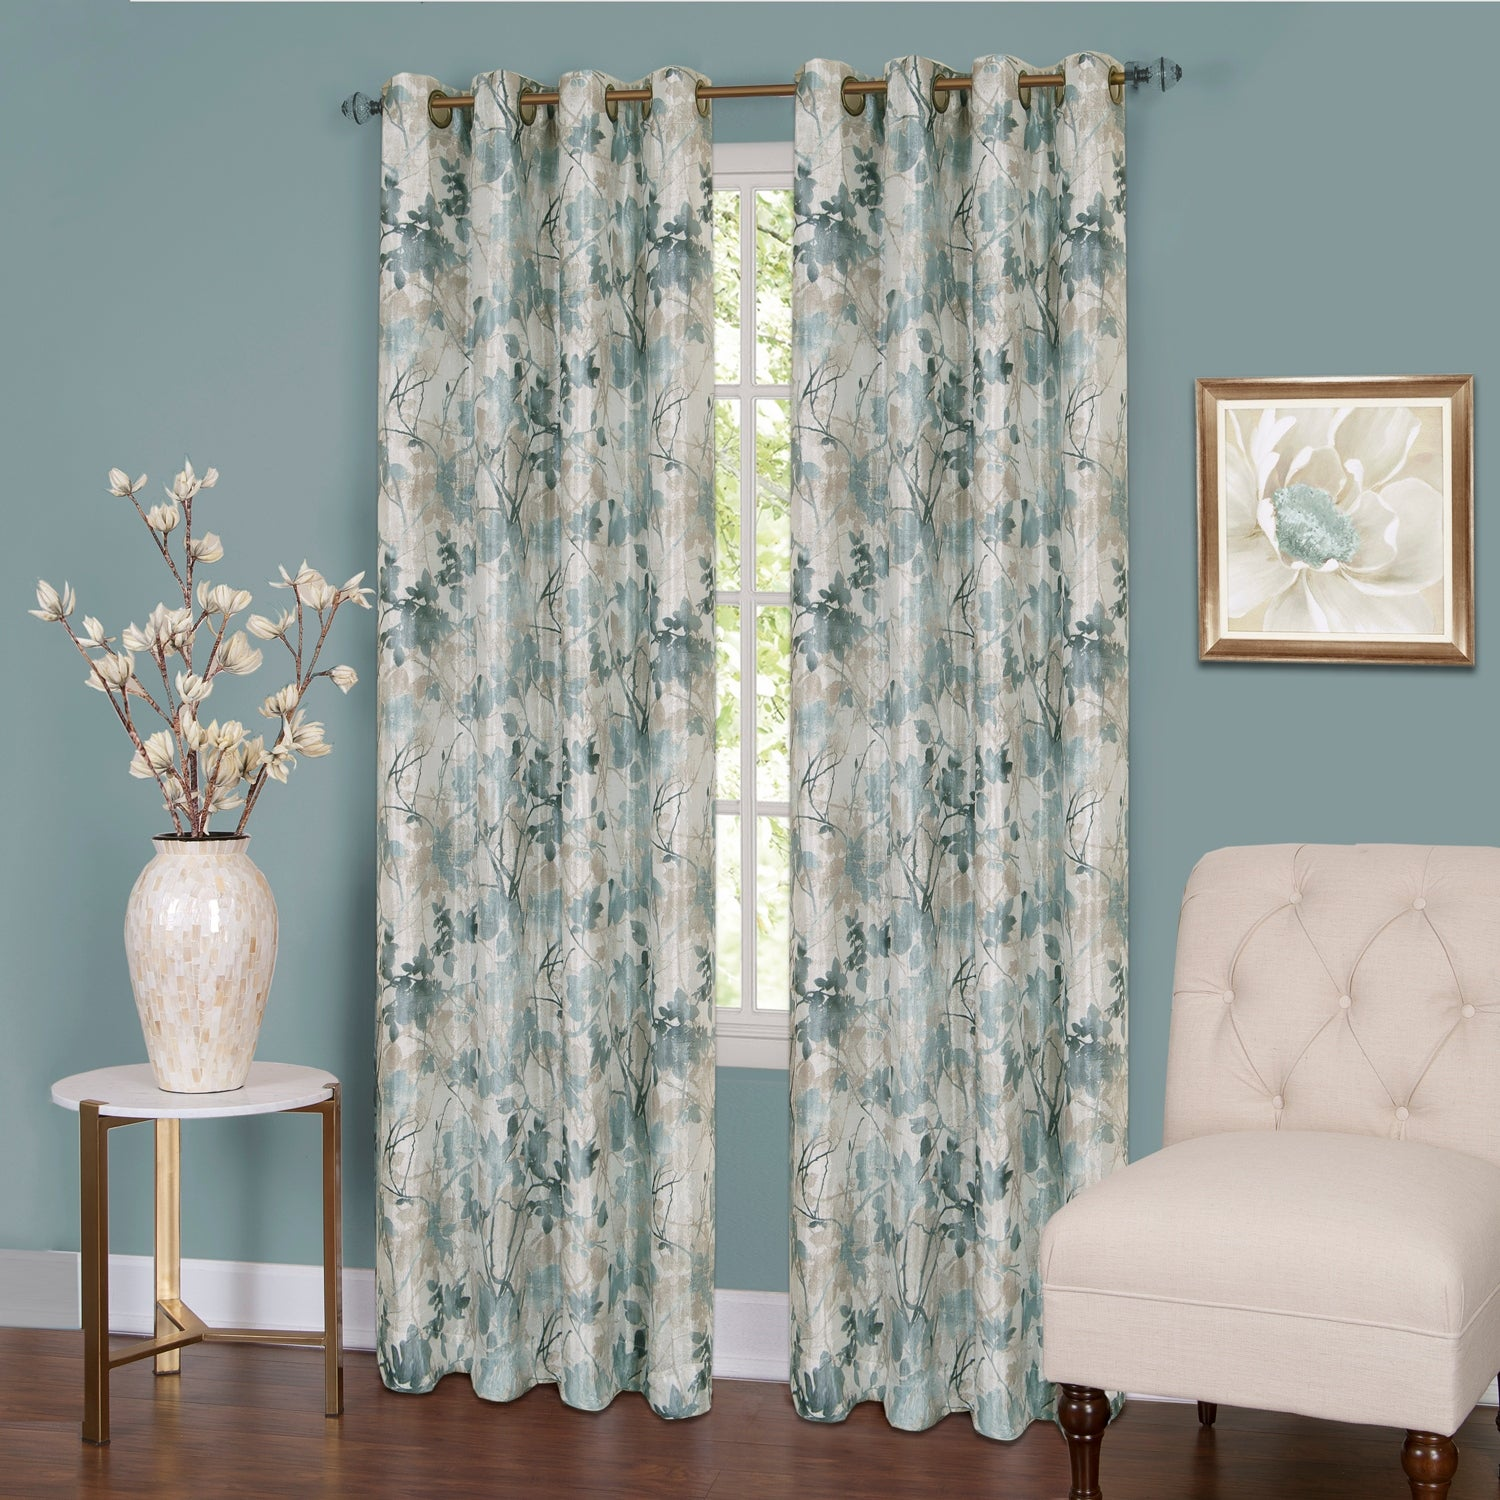 Don't Shy Away From a Floral Curtain